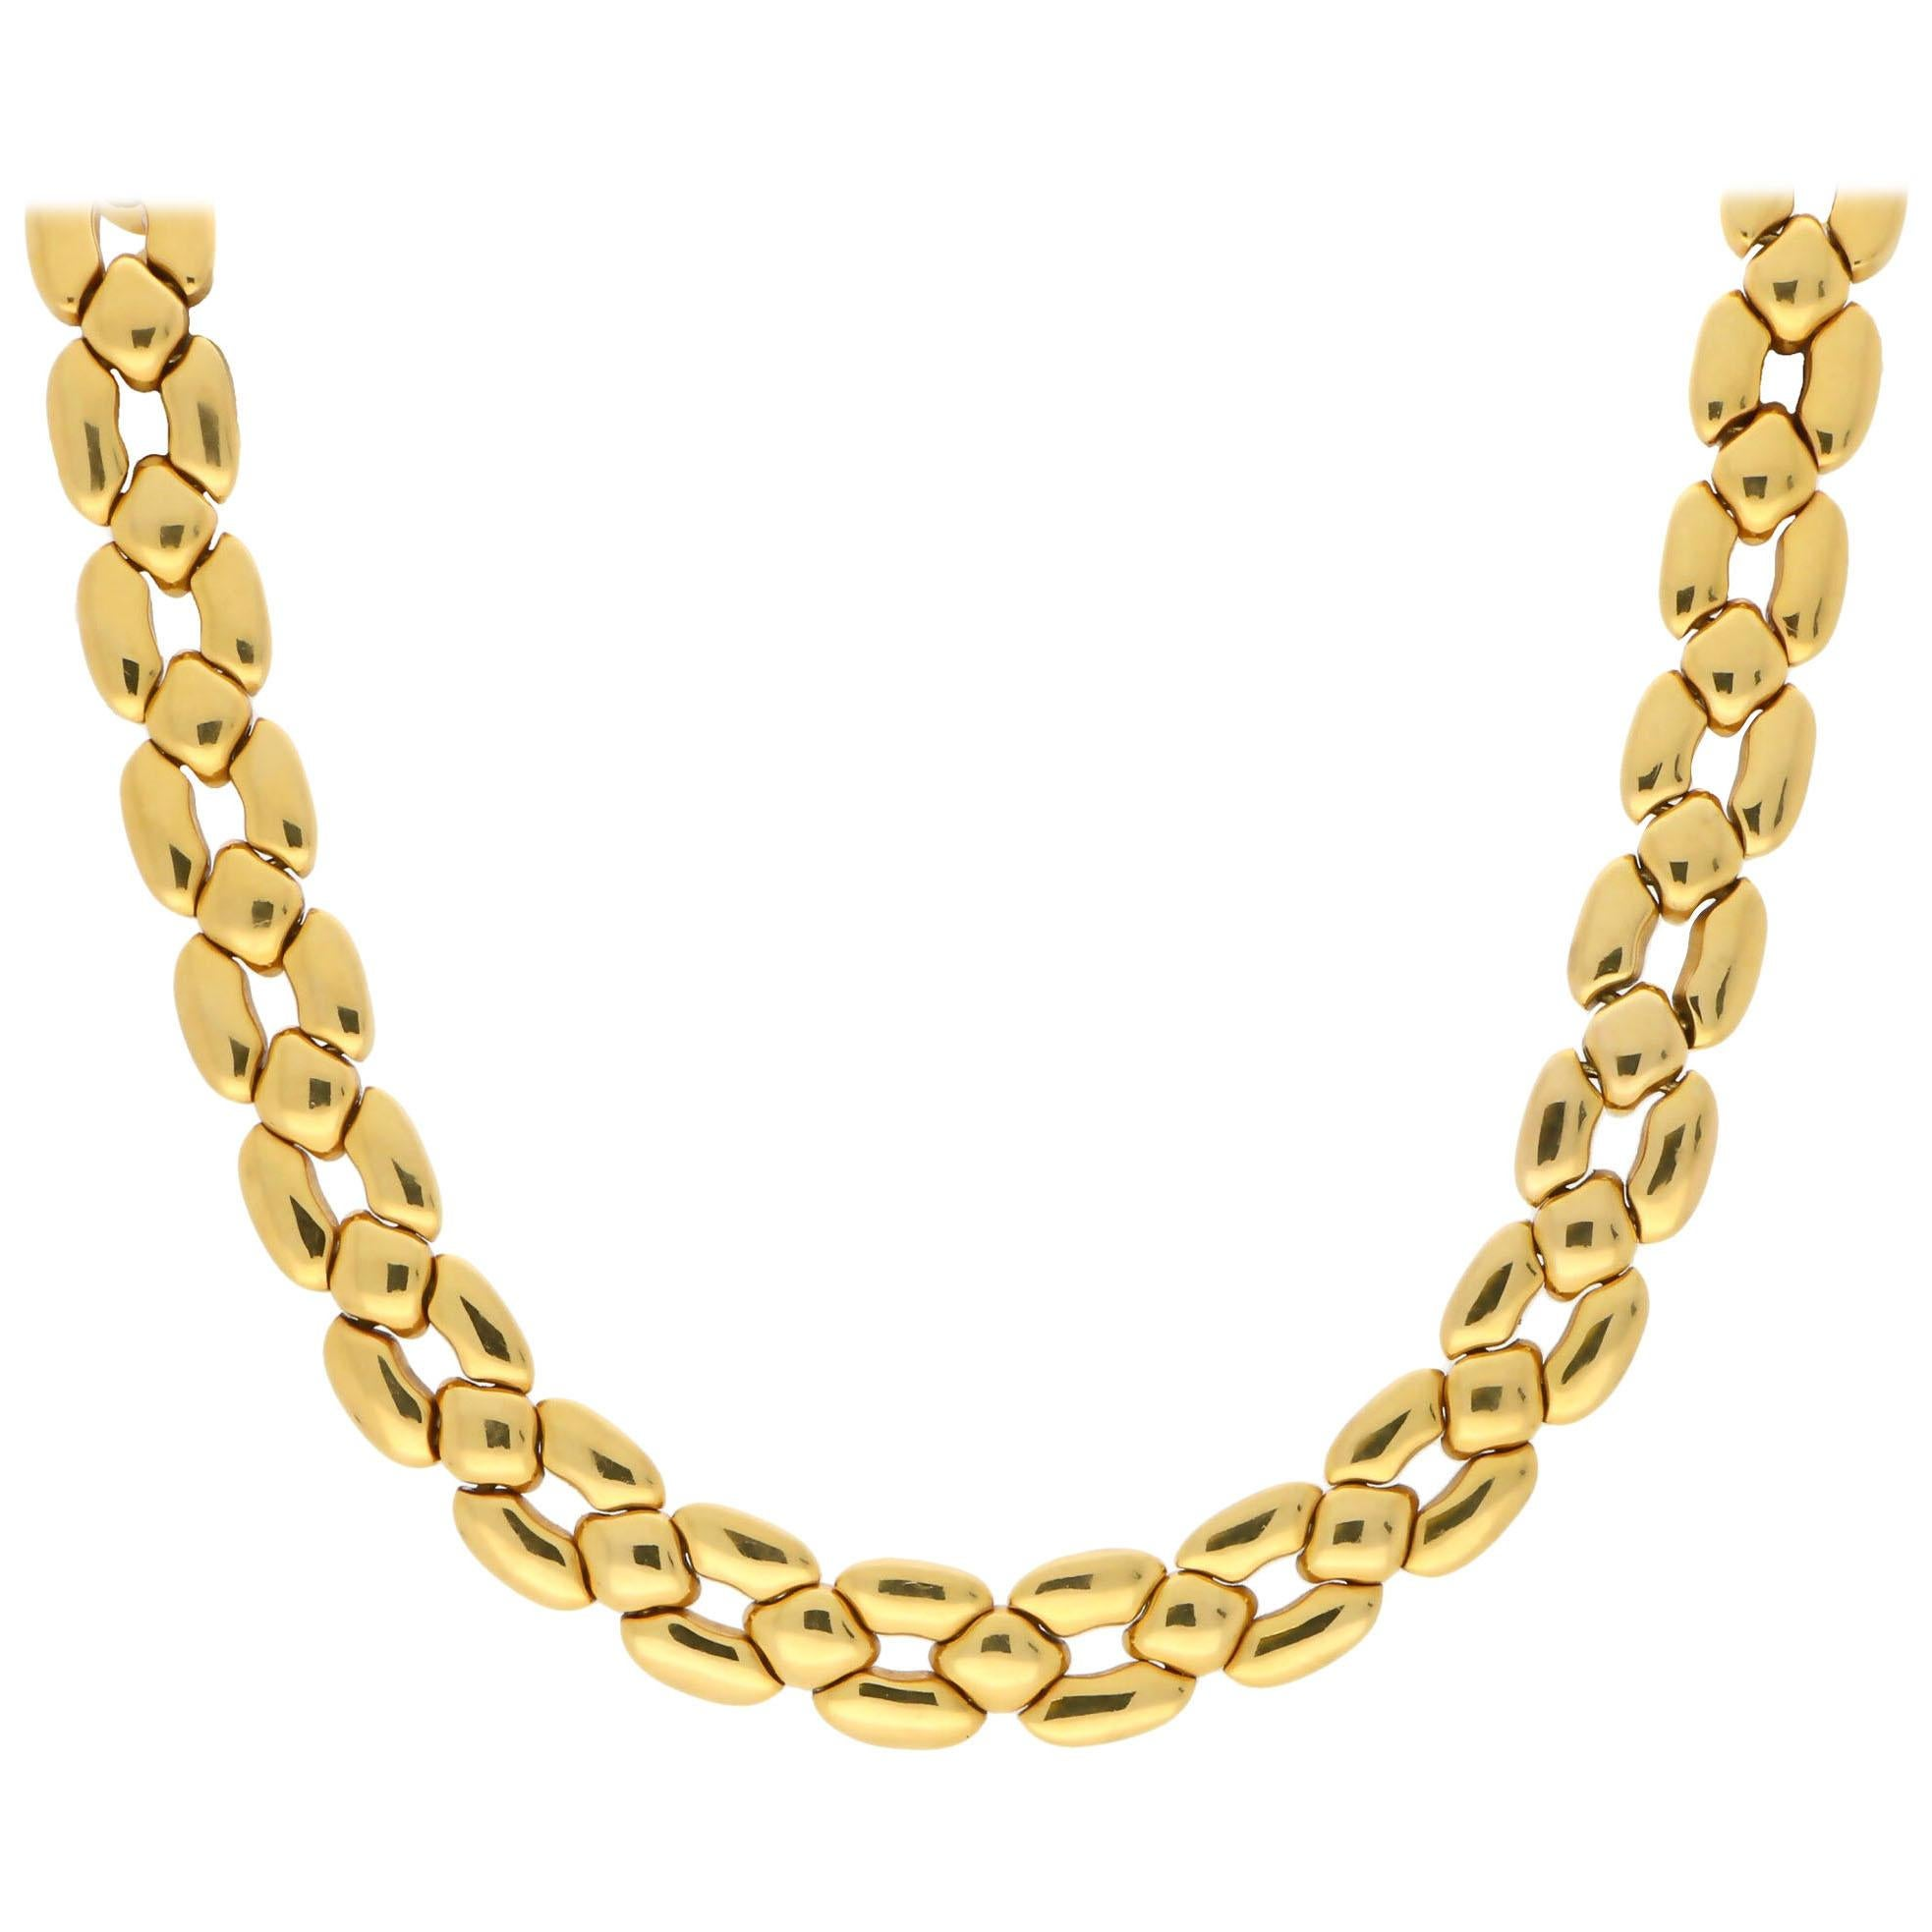 Vintage Cartier Chunky Honeycomb Link Necklace Set in 18 Karat Yellow Gold